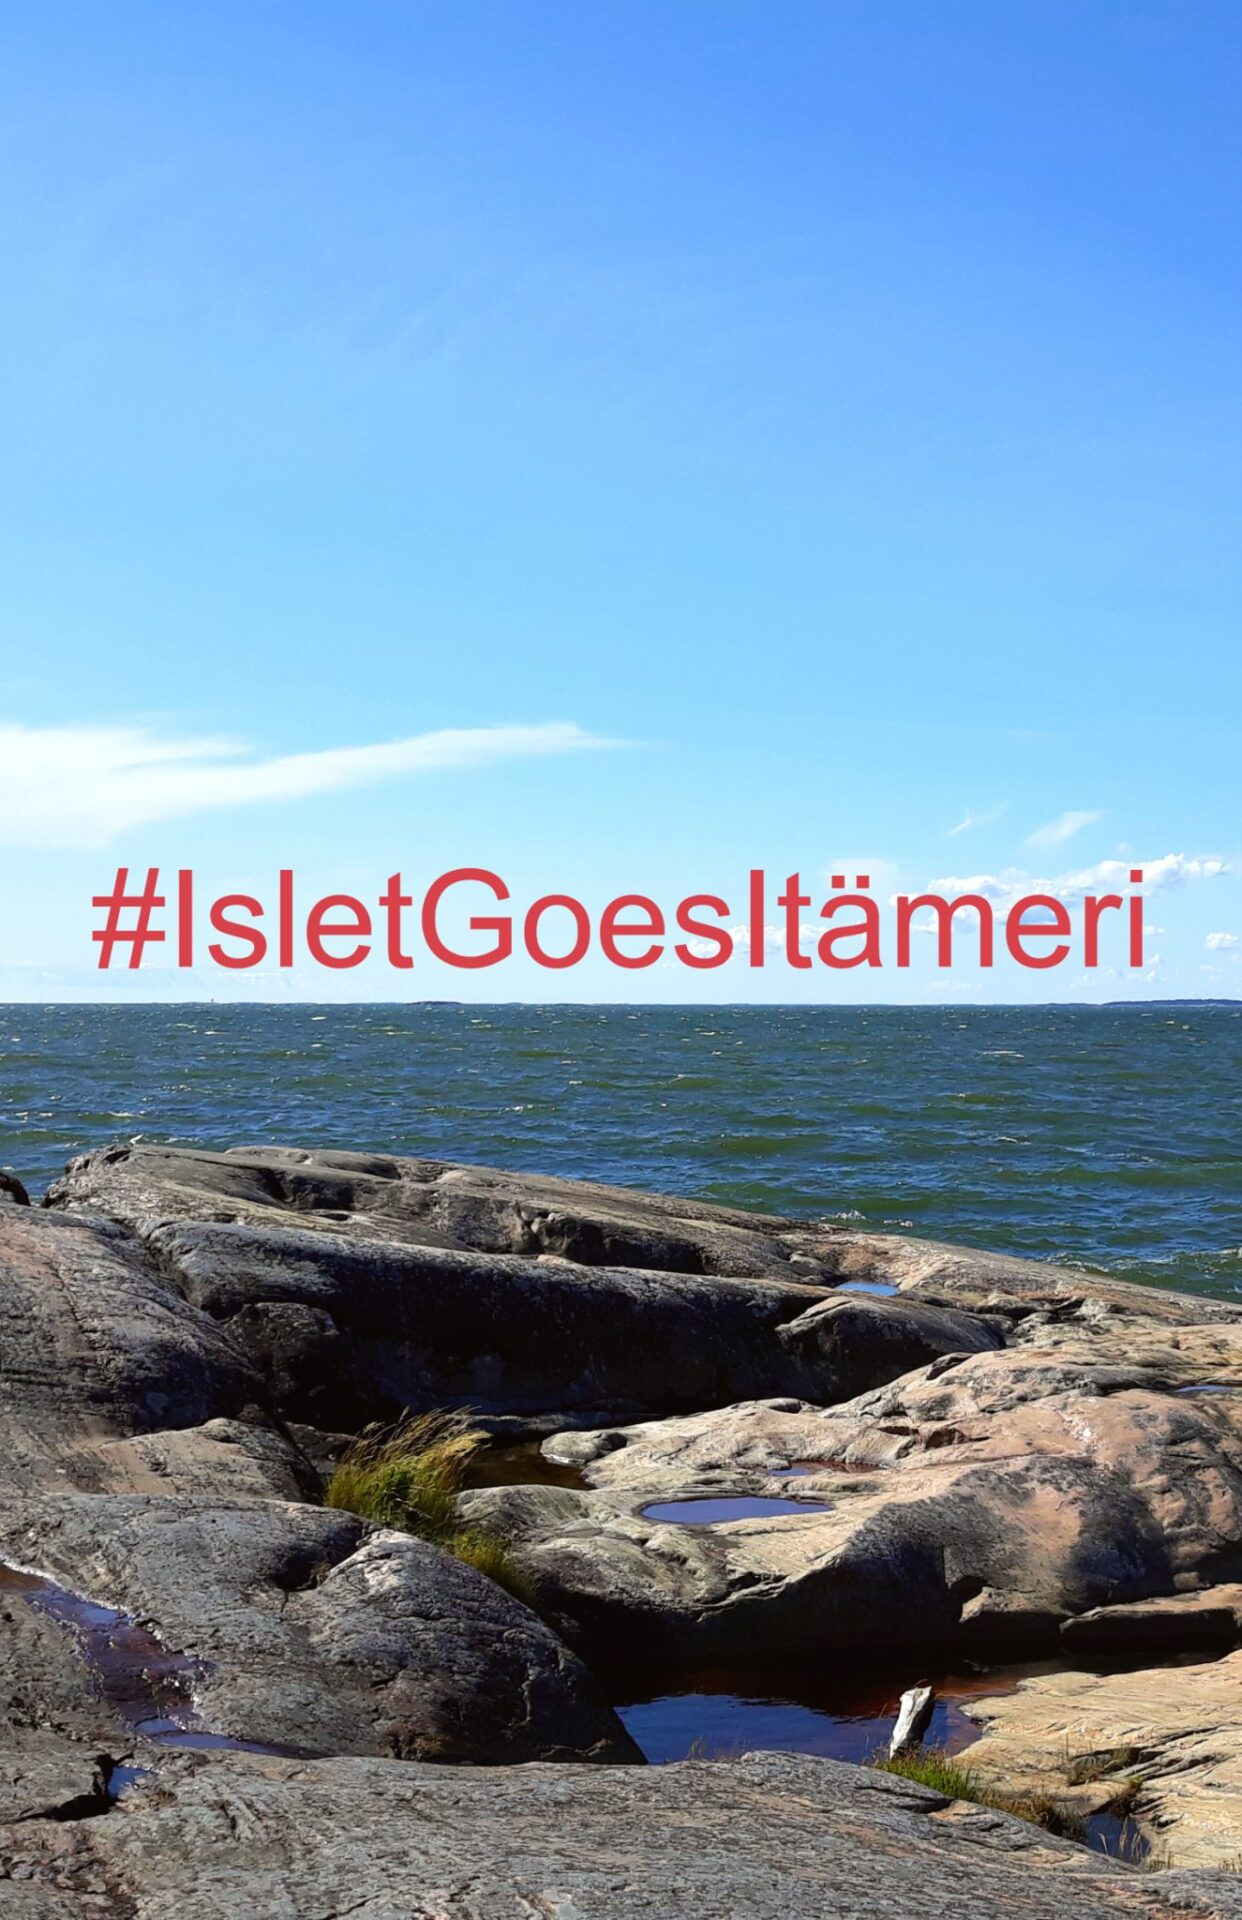 Data management expert Aureolis joins #IsletGoesItämeri campaign